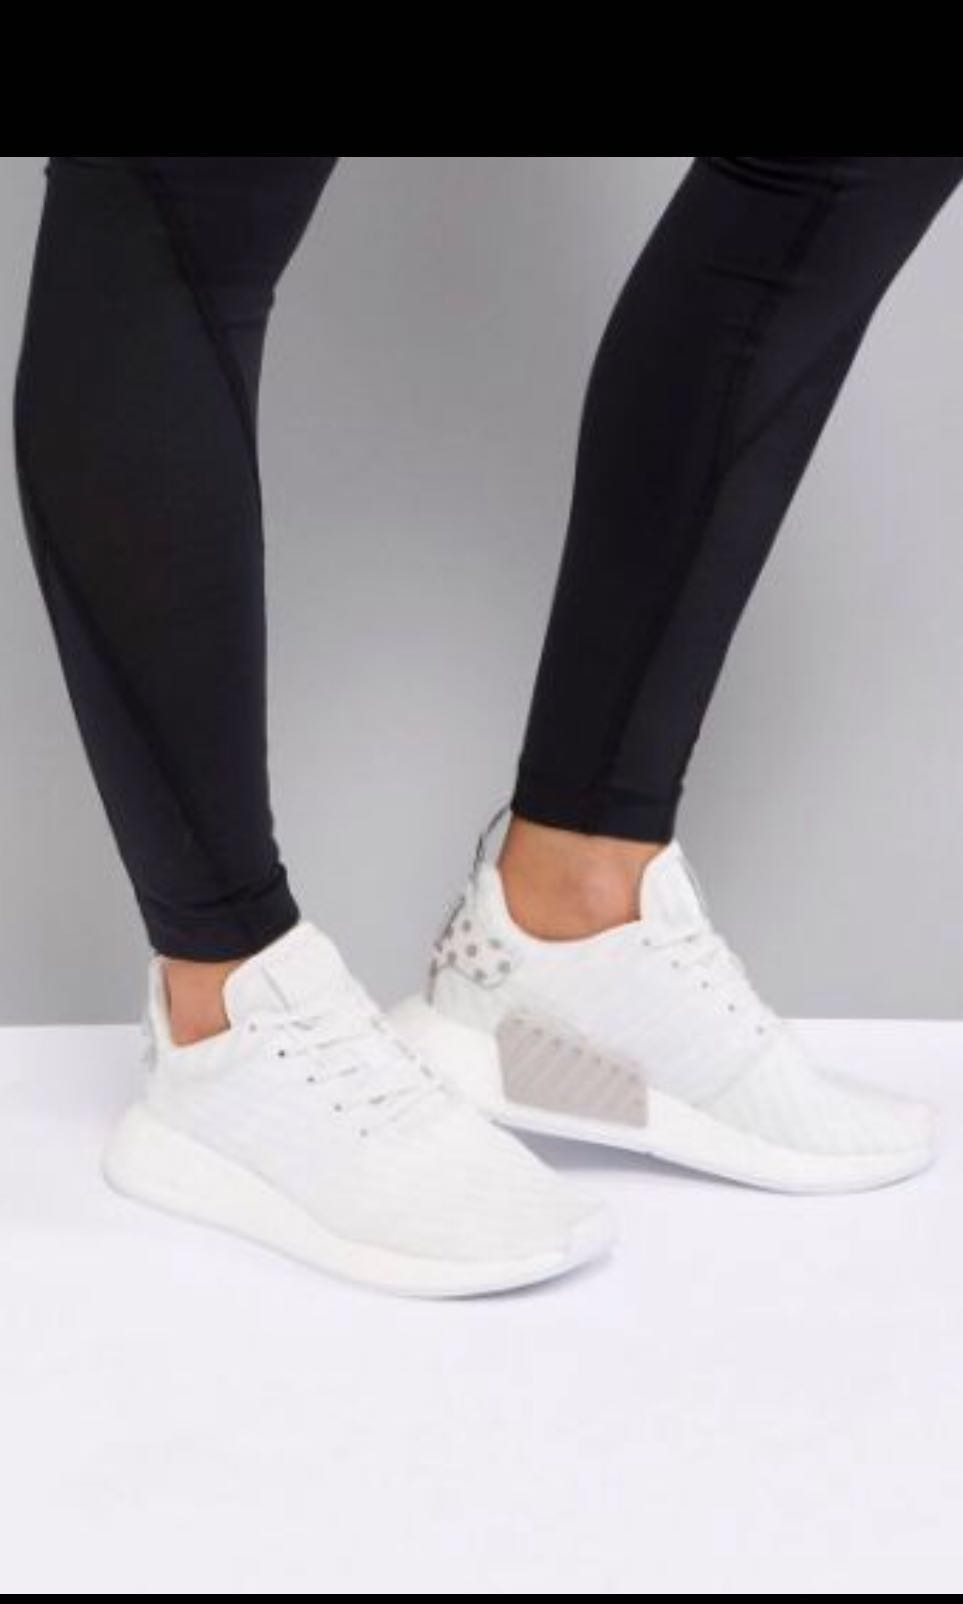 696b60ecb Home · Women s Fashion · Shoes · Sneakers. photo photo photo photo